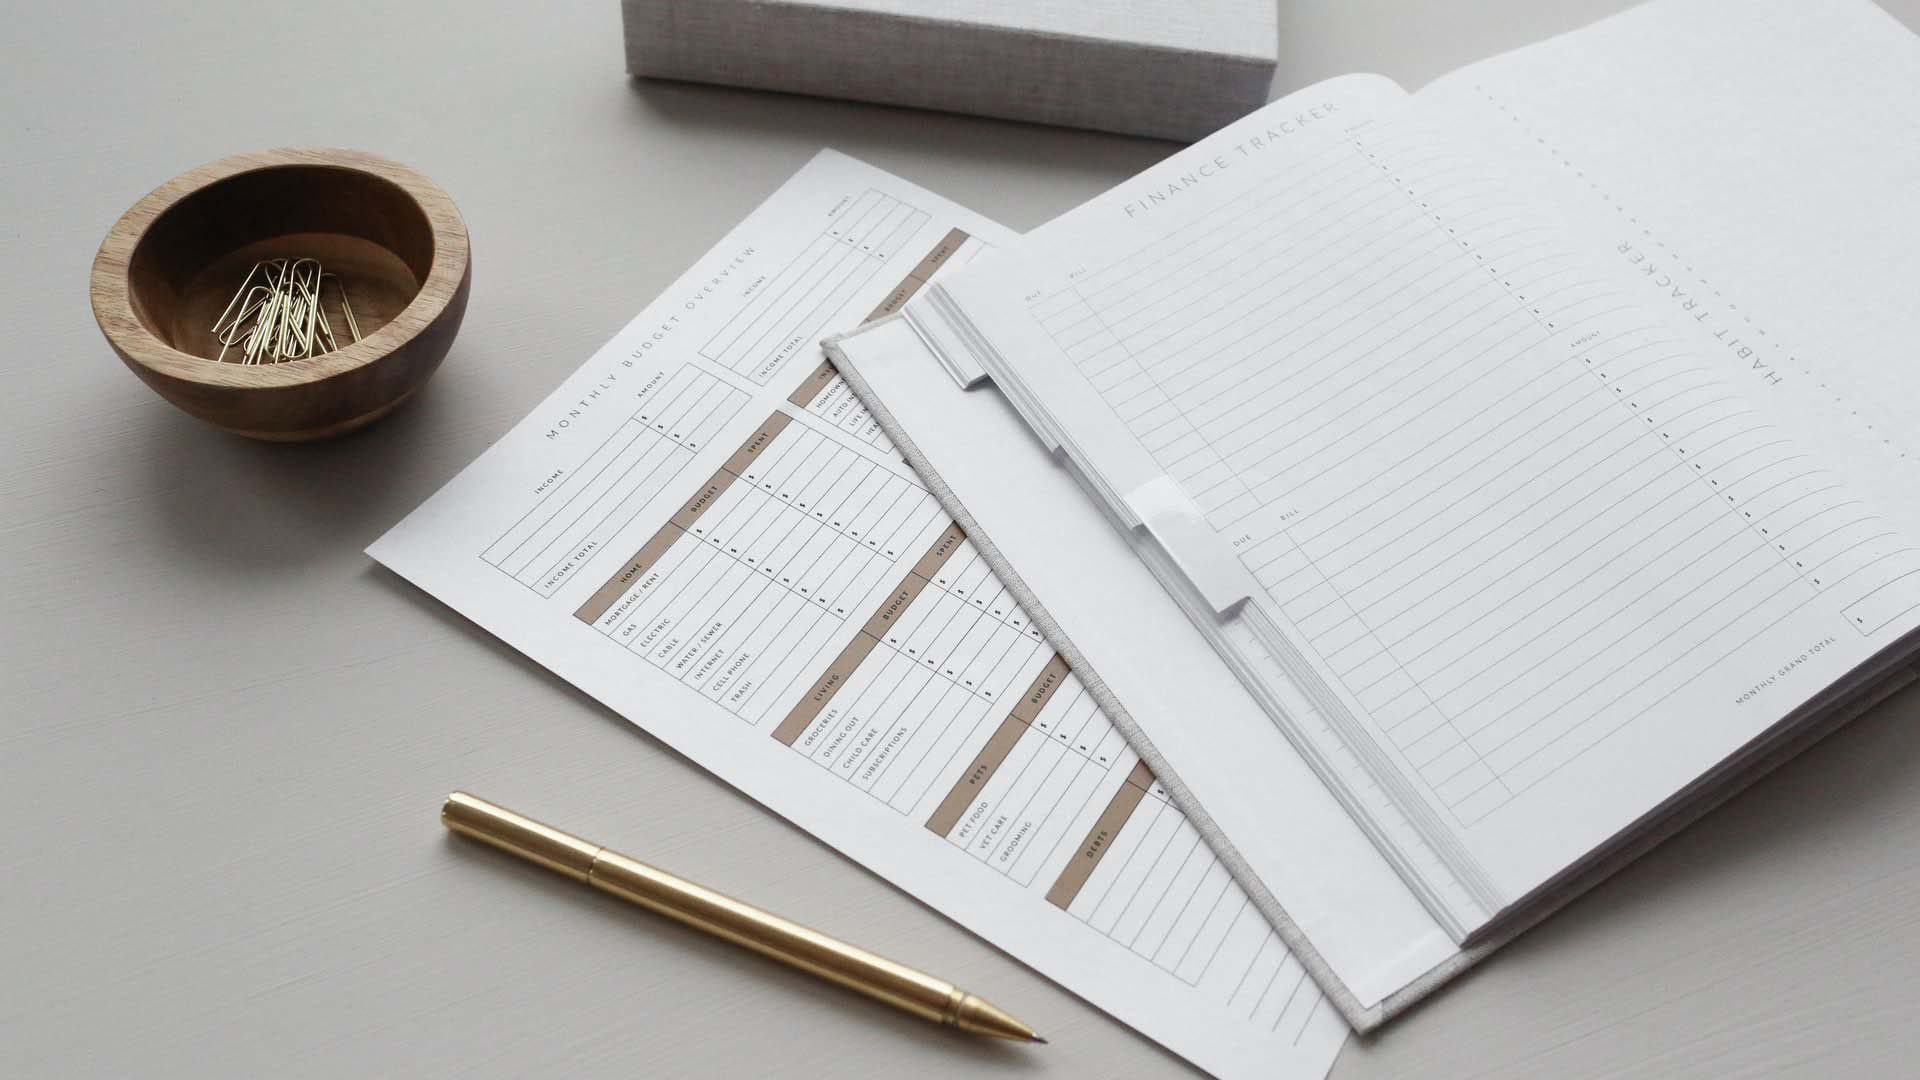 budgeting documents on table with pen and paperclips